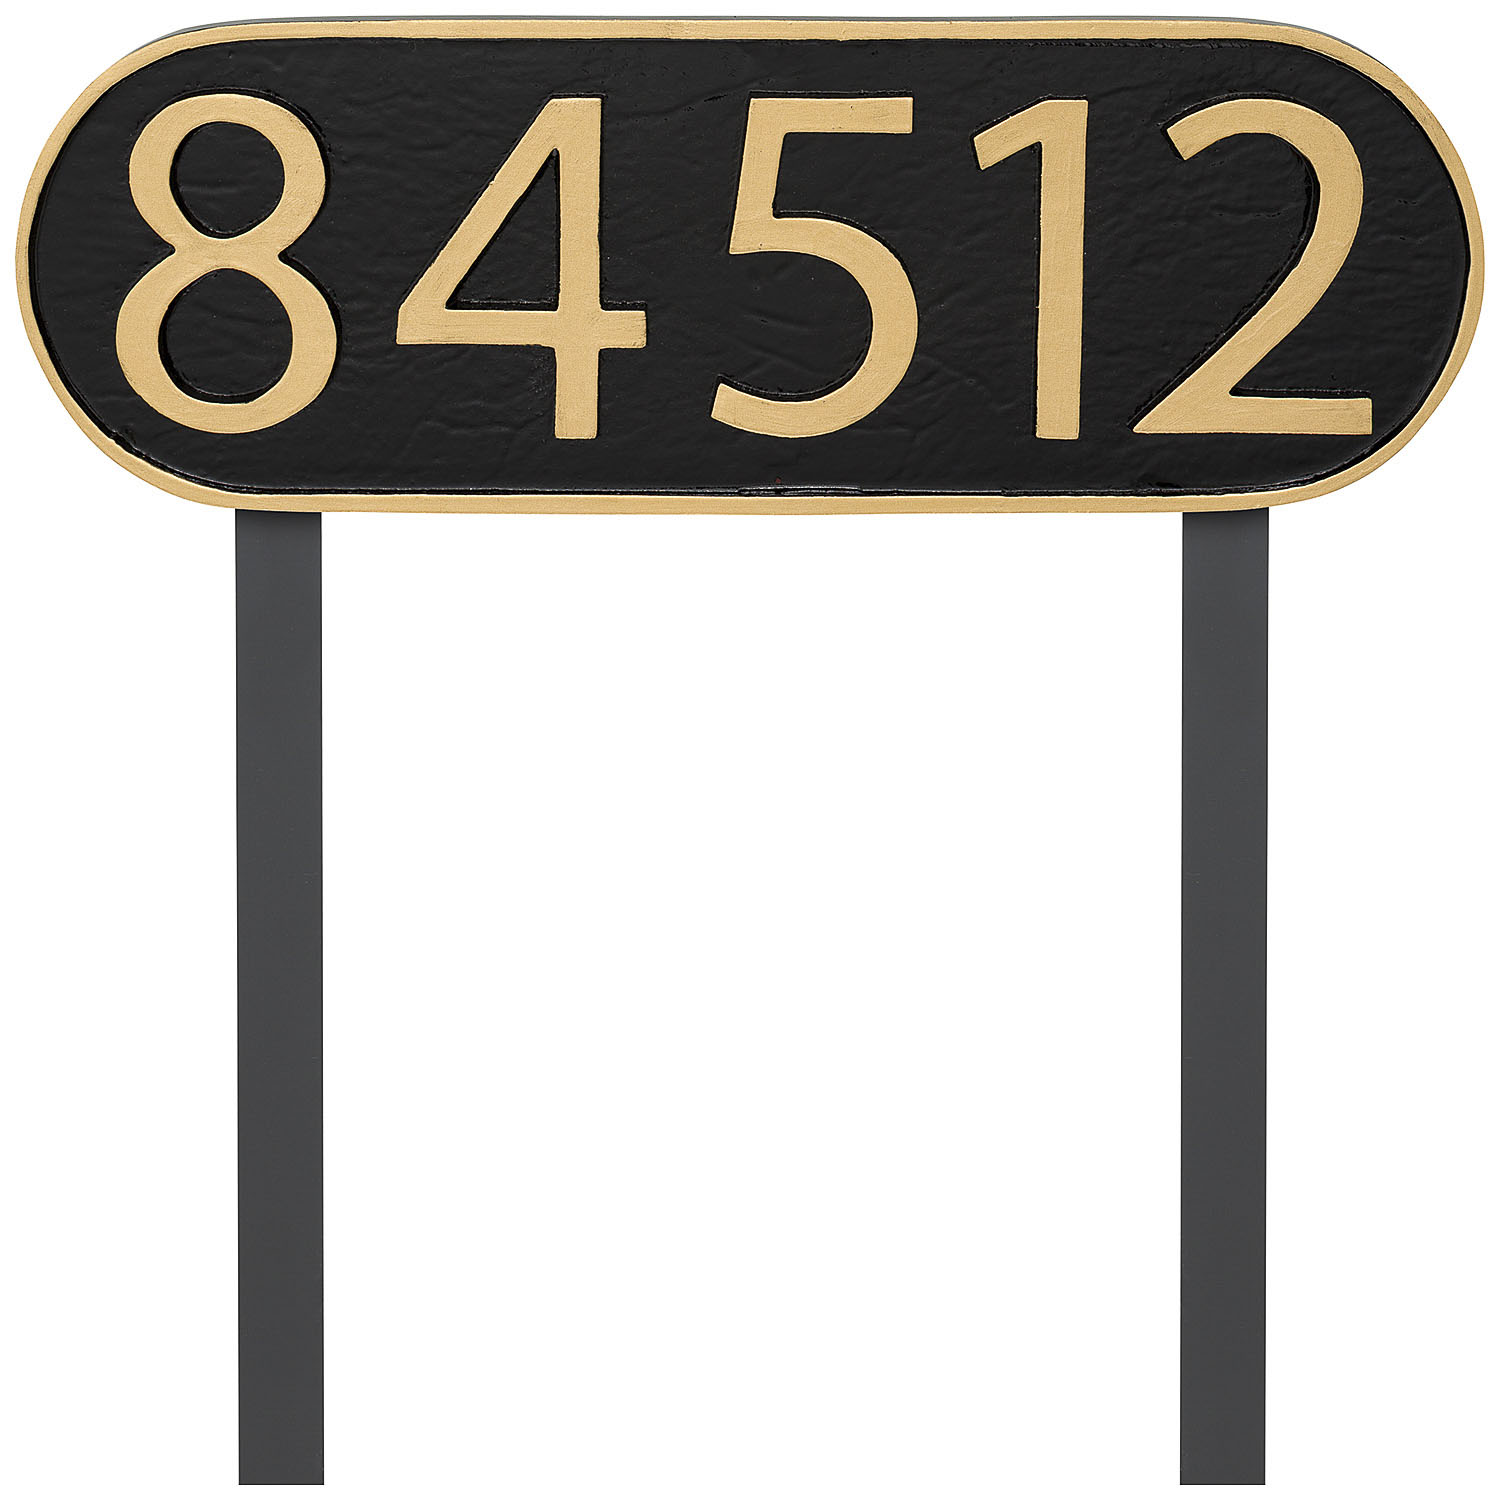 Modern Oblong Economy Address Plaque (holds up to 5 characters)